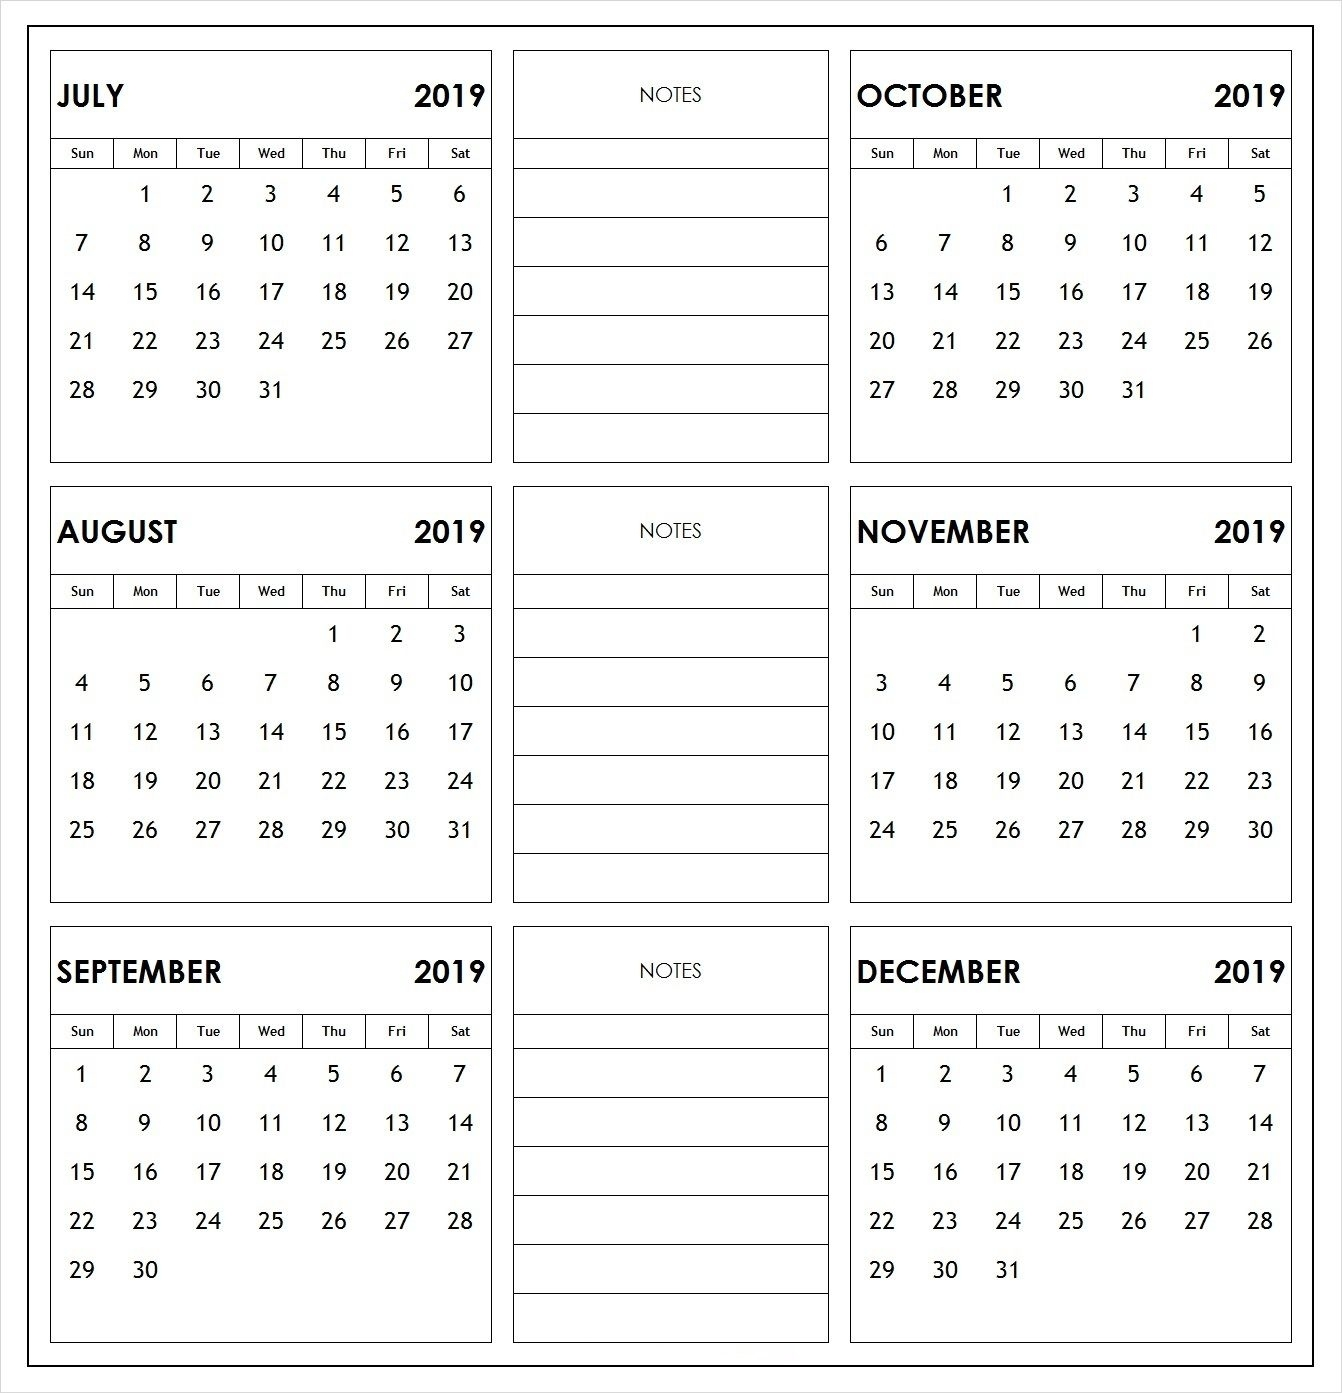 2019 Half Year Print Calendar | Print Calendar, 2019 6 Month Fill In Calendar On One Page